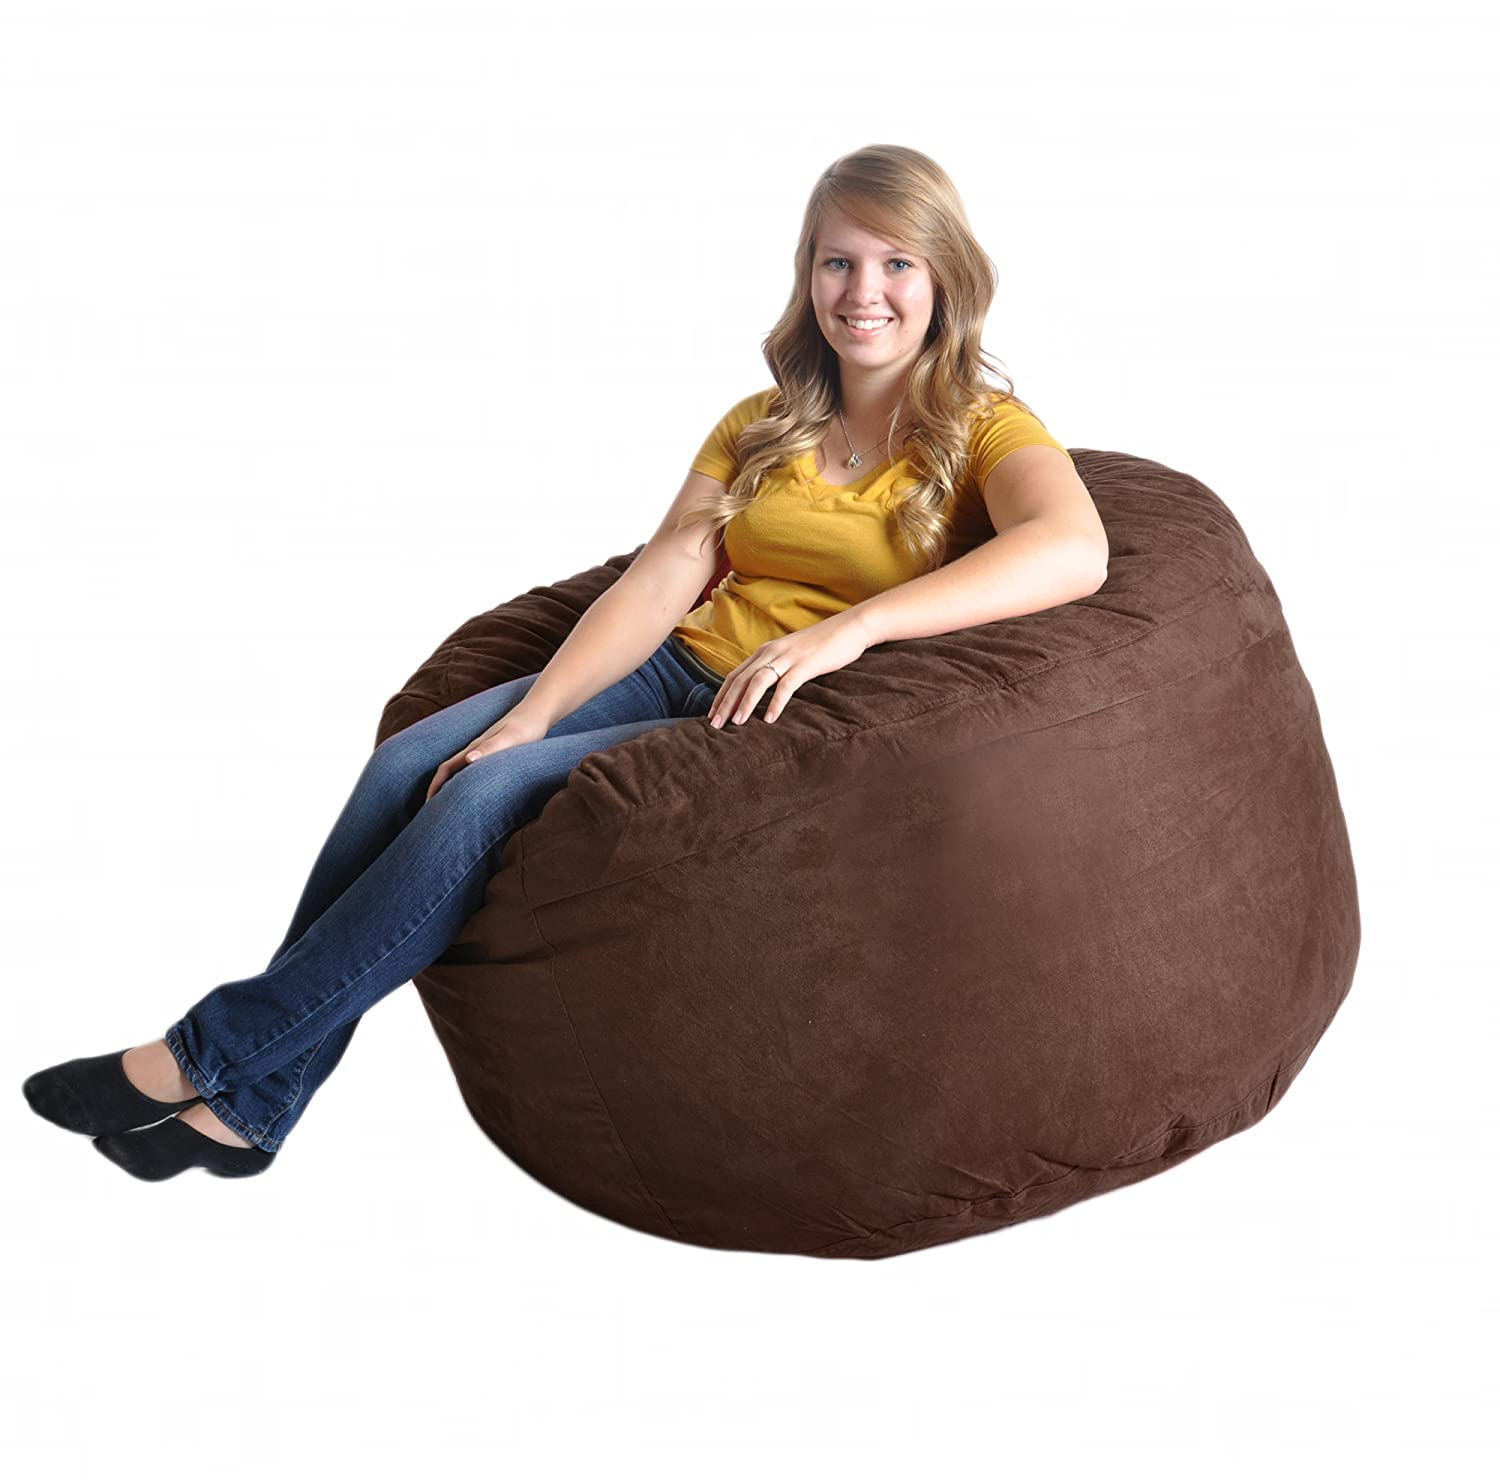 SLACKER sack 4-Feet Foam Microsuede Beanbag Chair, Large, Chocolate